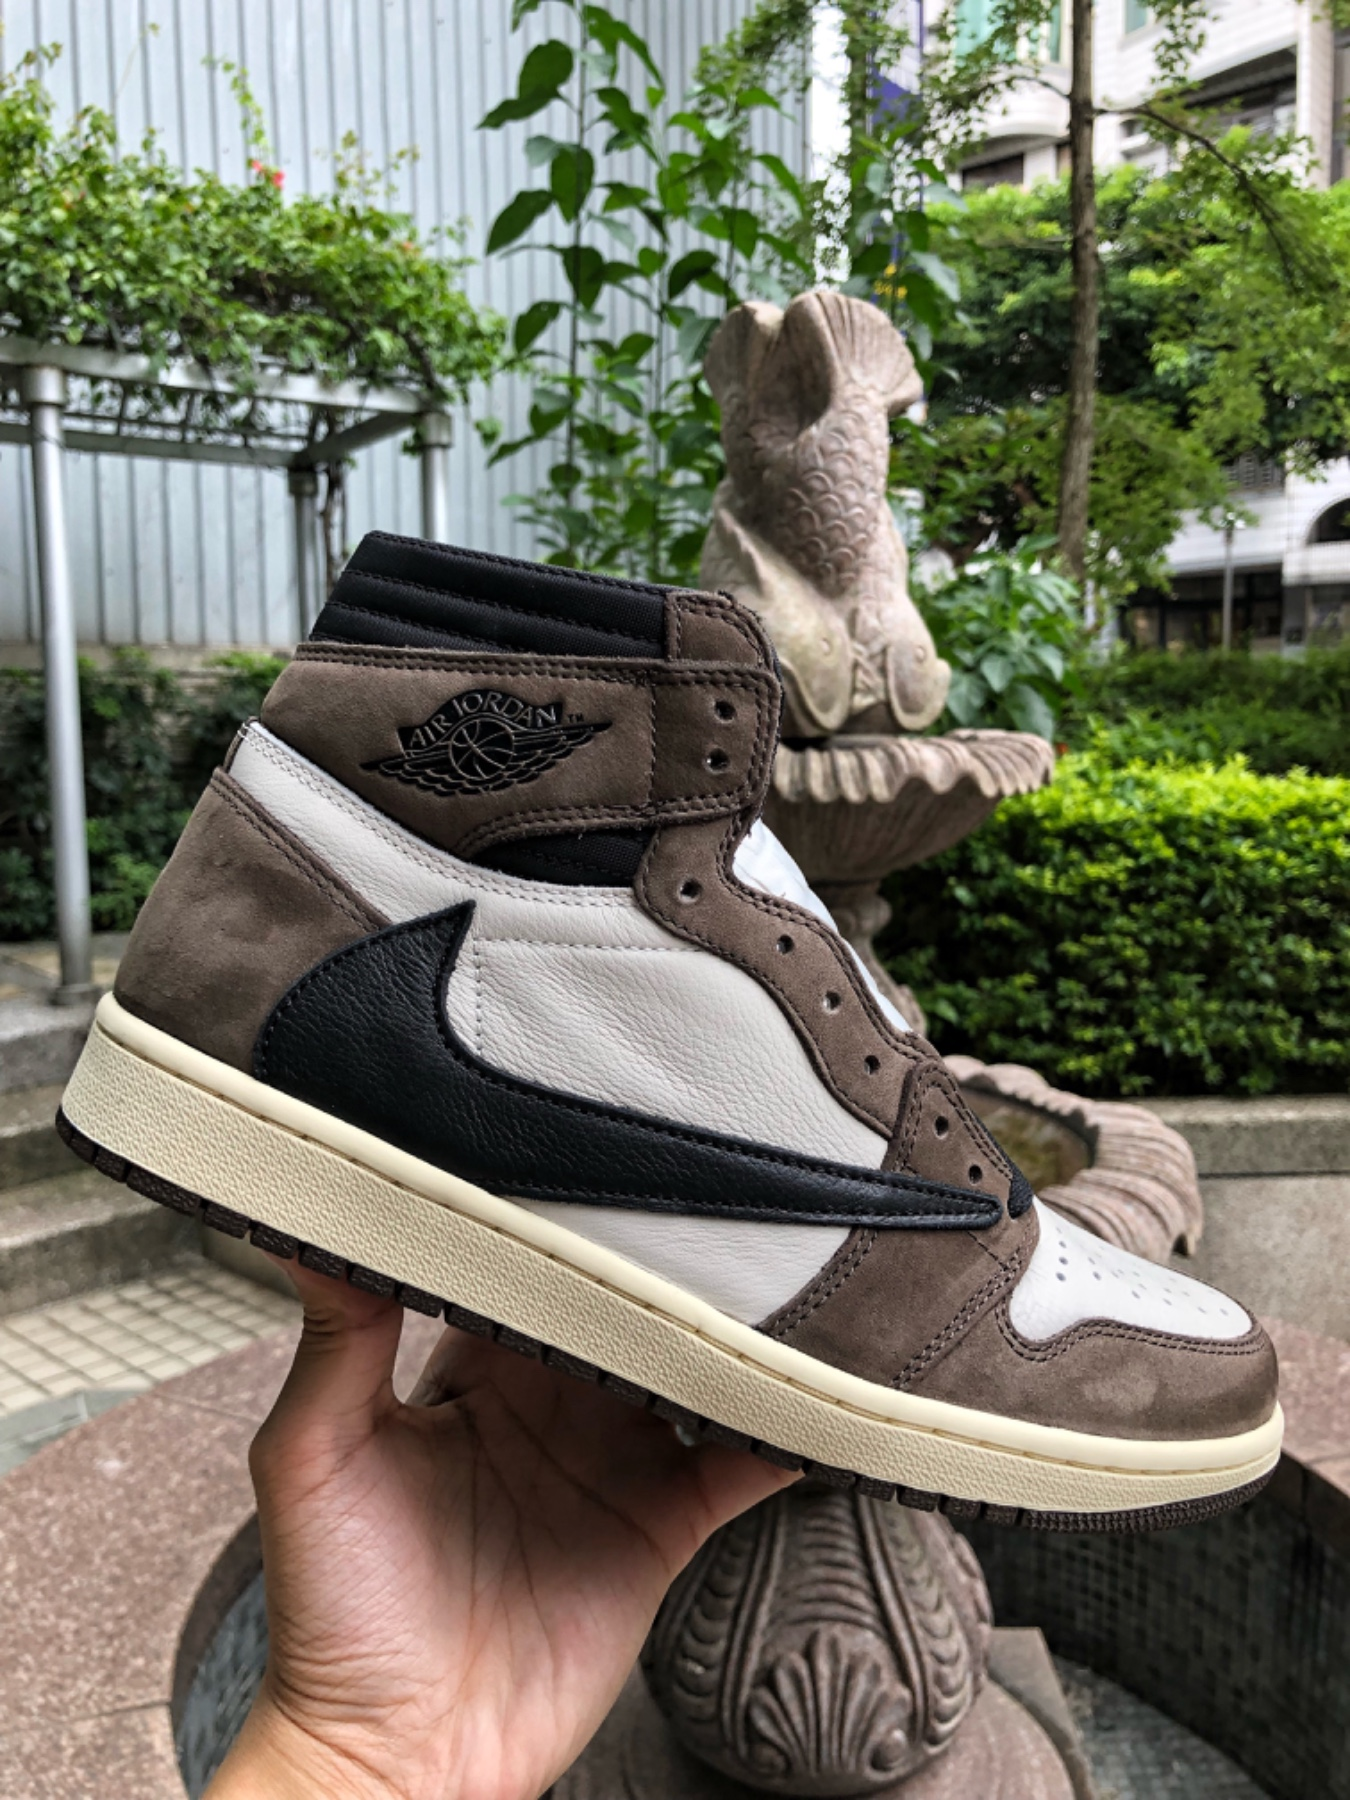 Travis Scott x Air Jordan 1 High